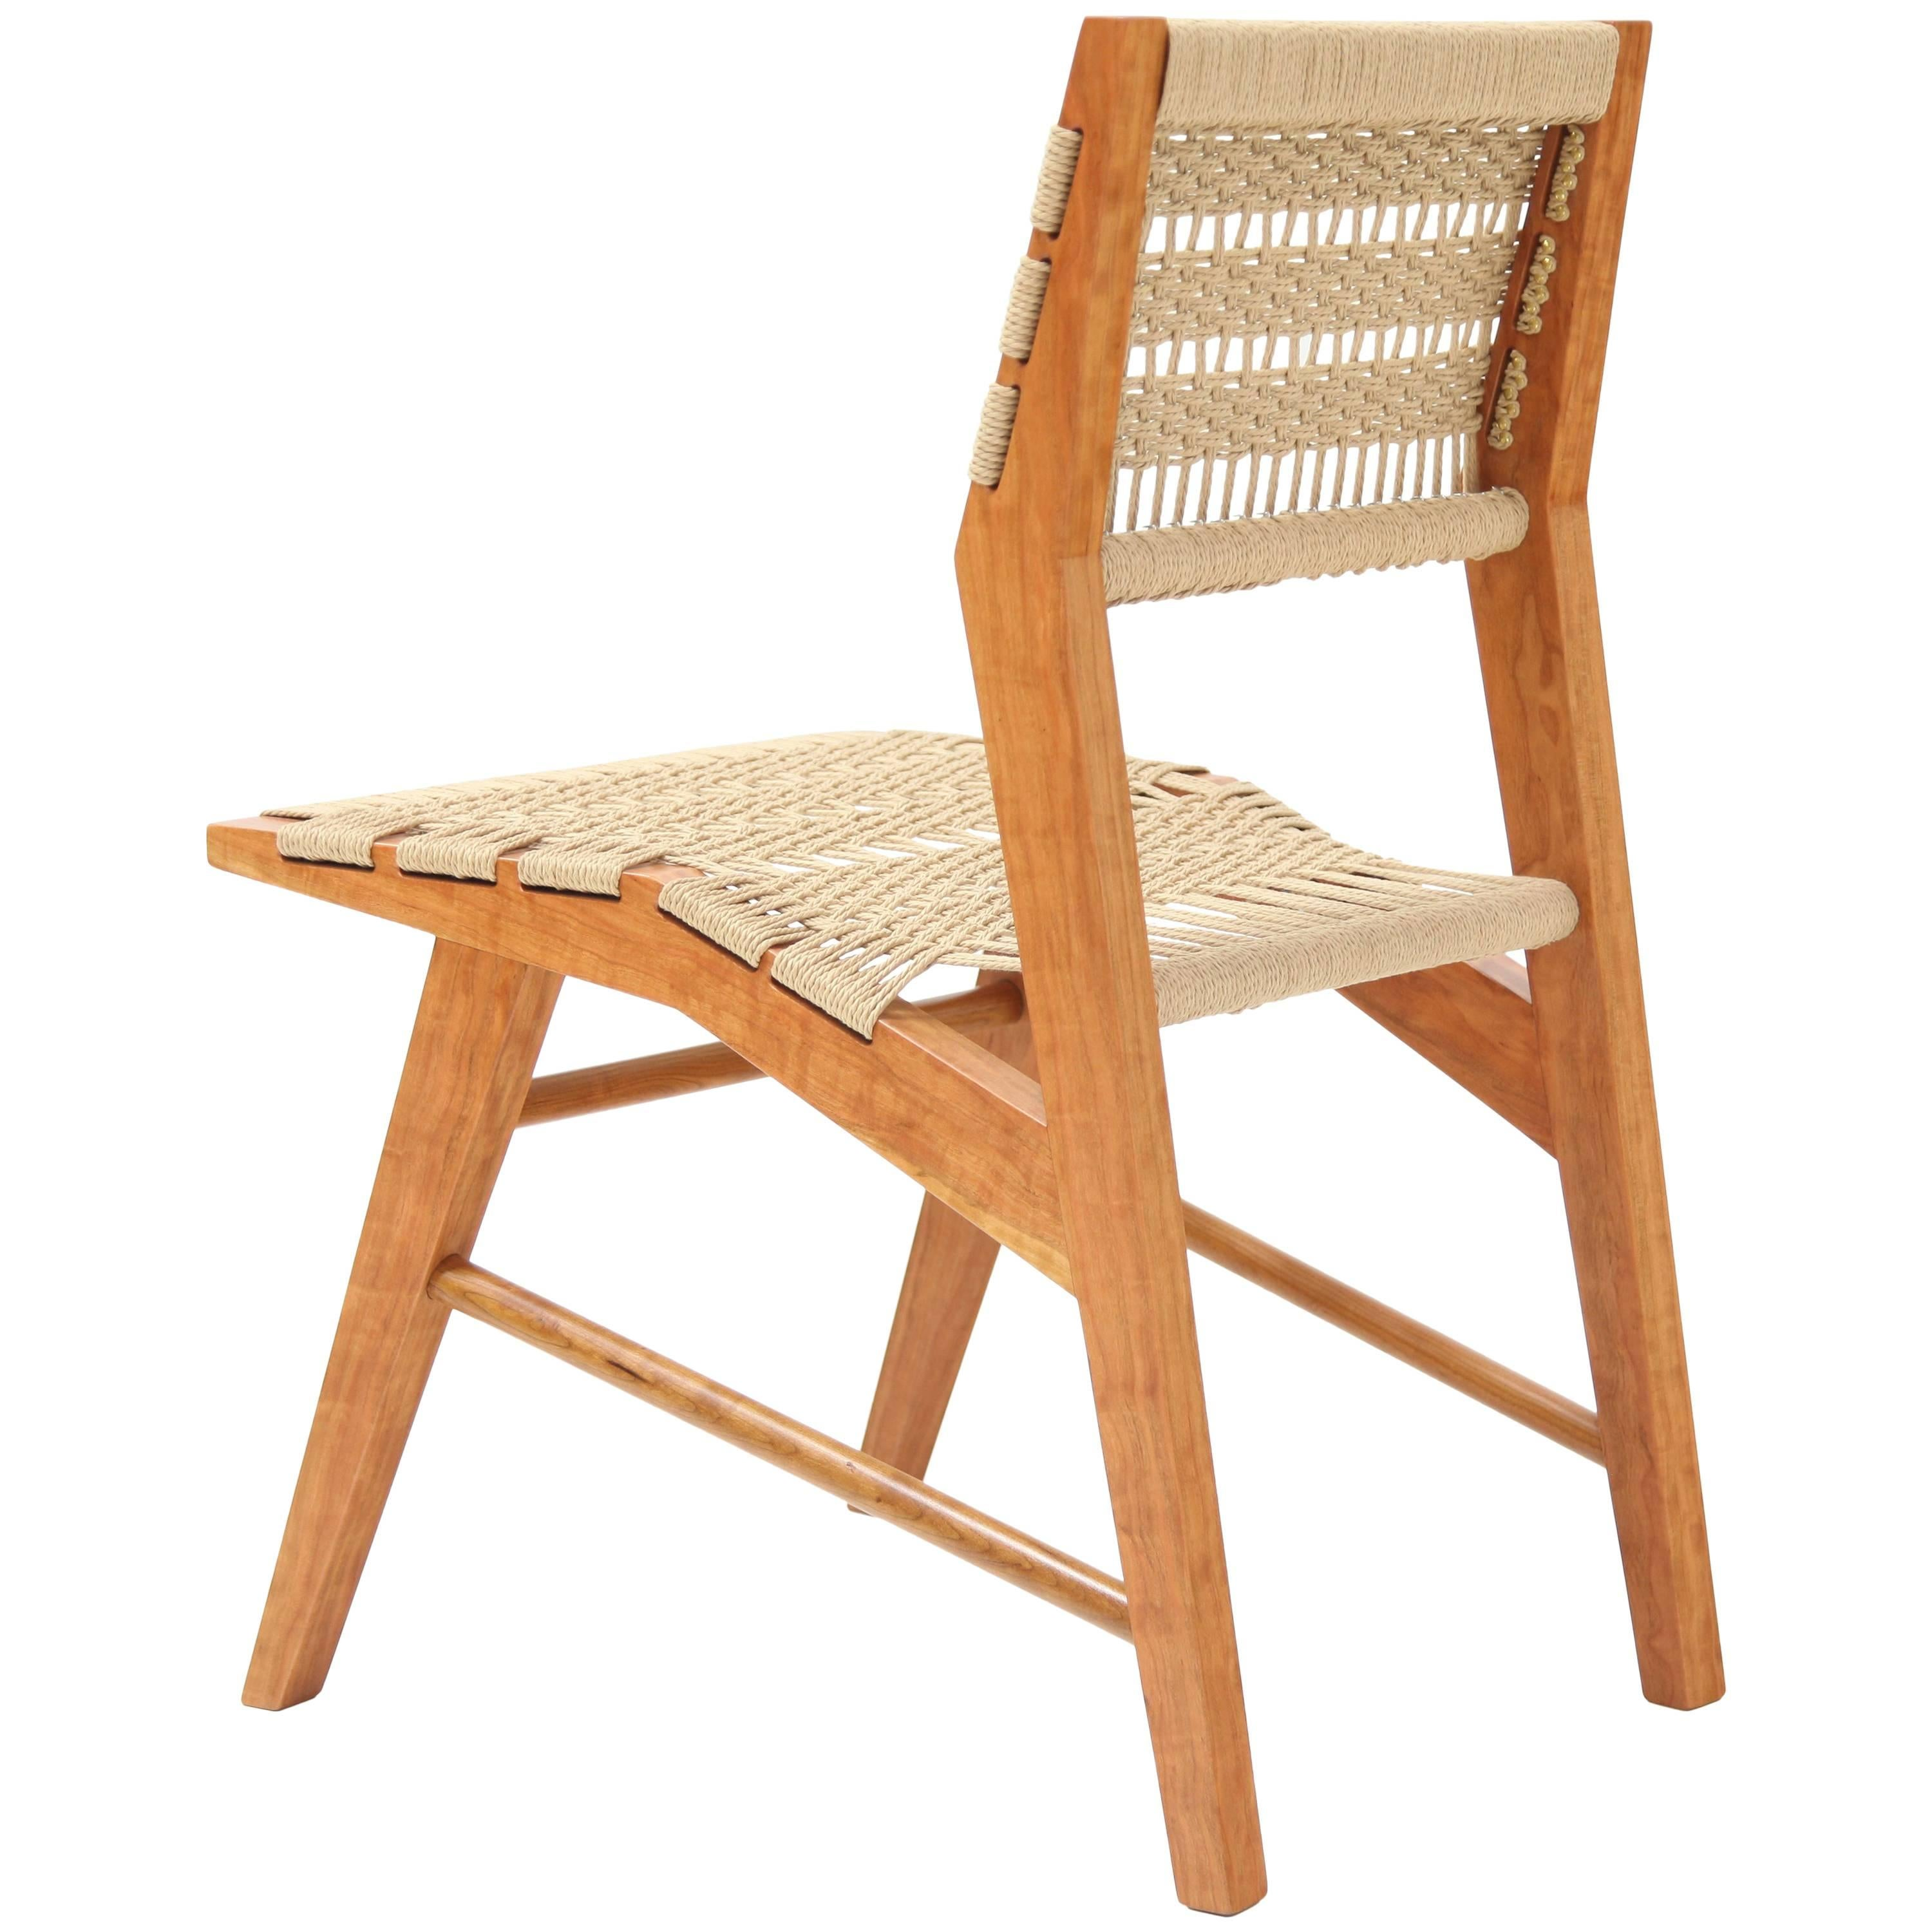 Attrayant Hyde Wood Dining Chair With Midcentury Modern Influence U0026 Hand Woven Danish  Cord